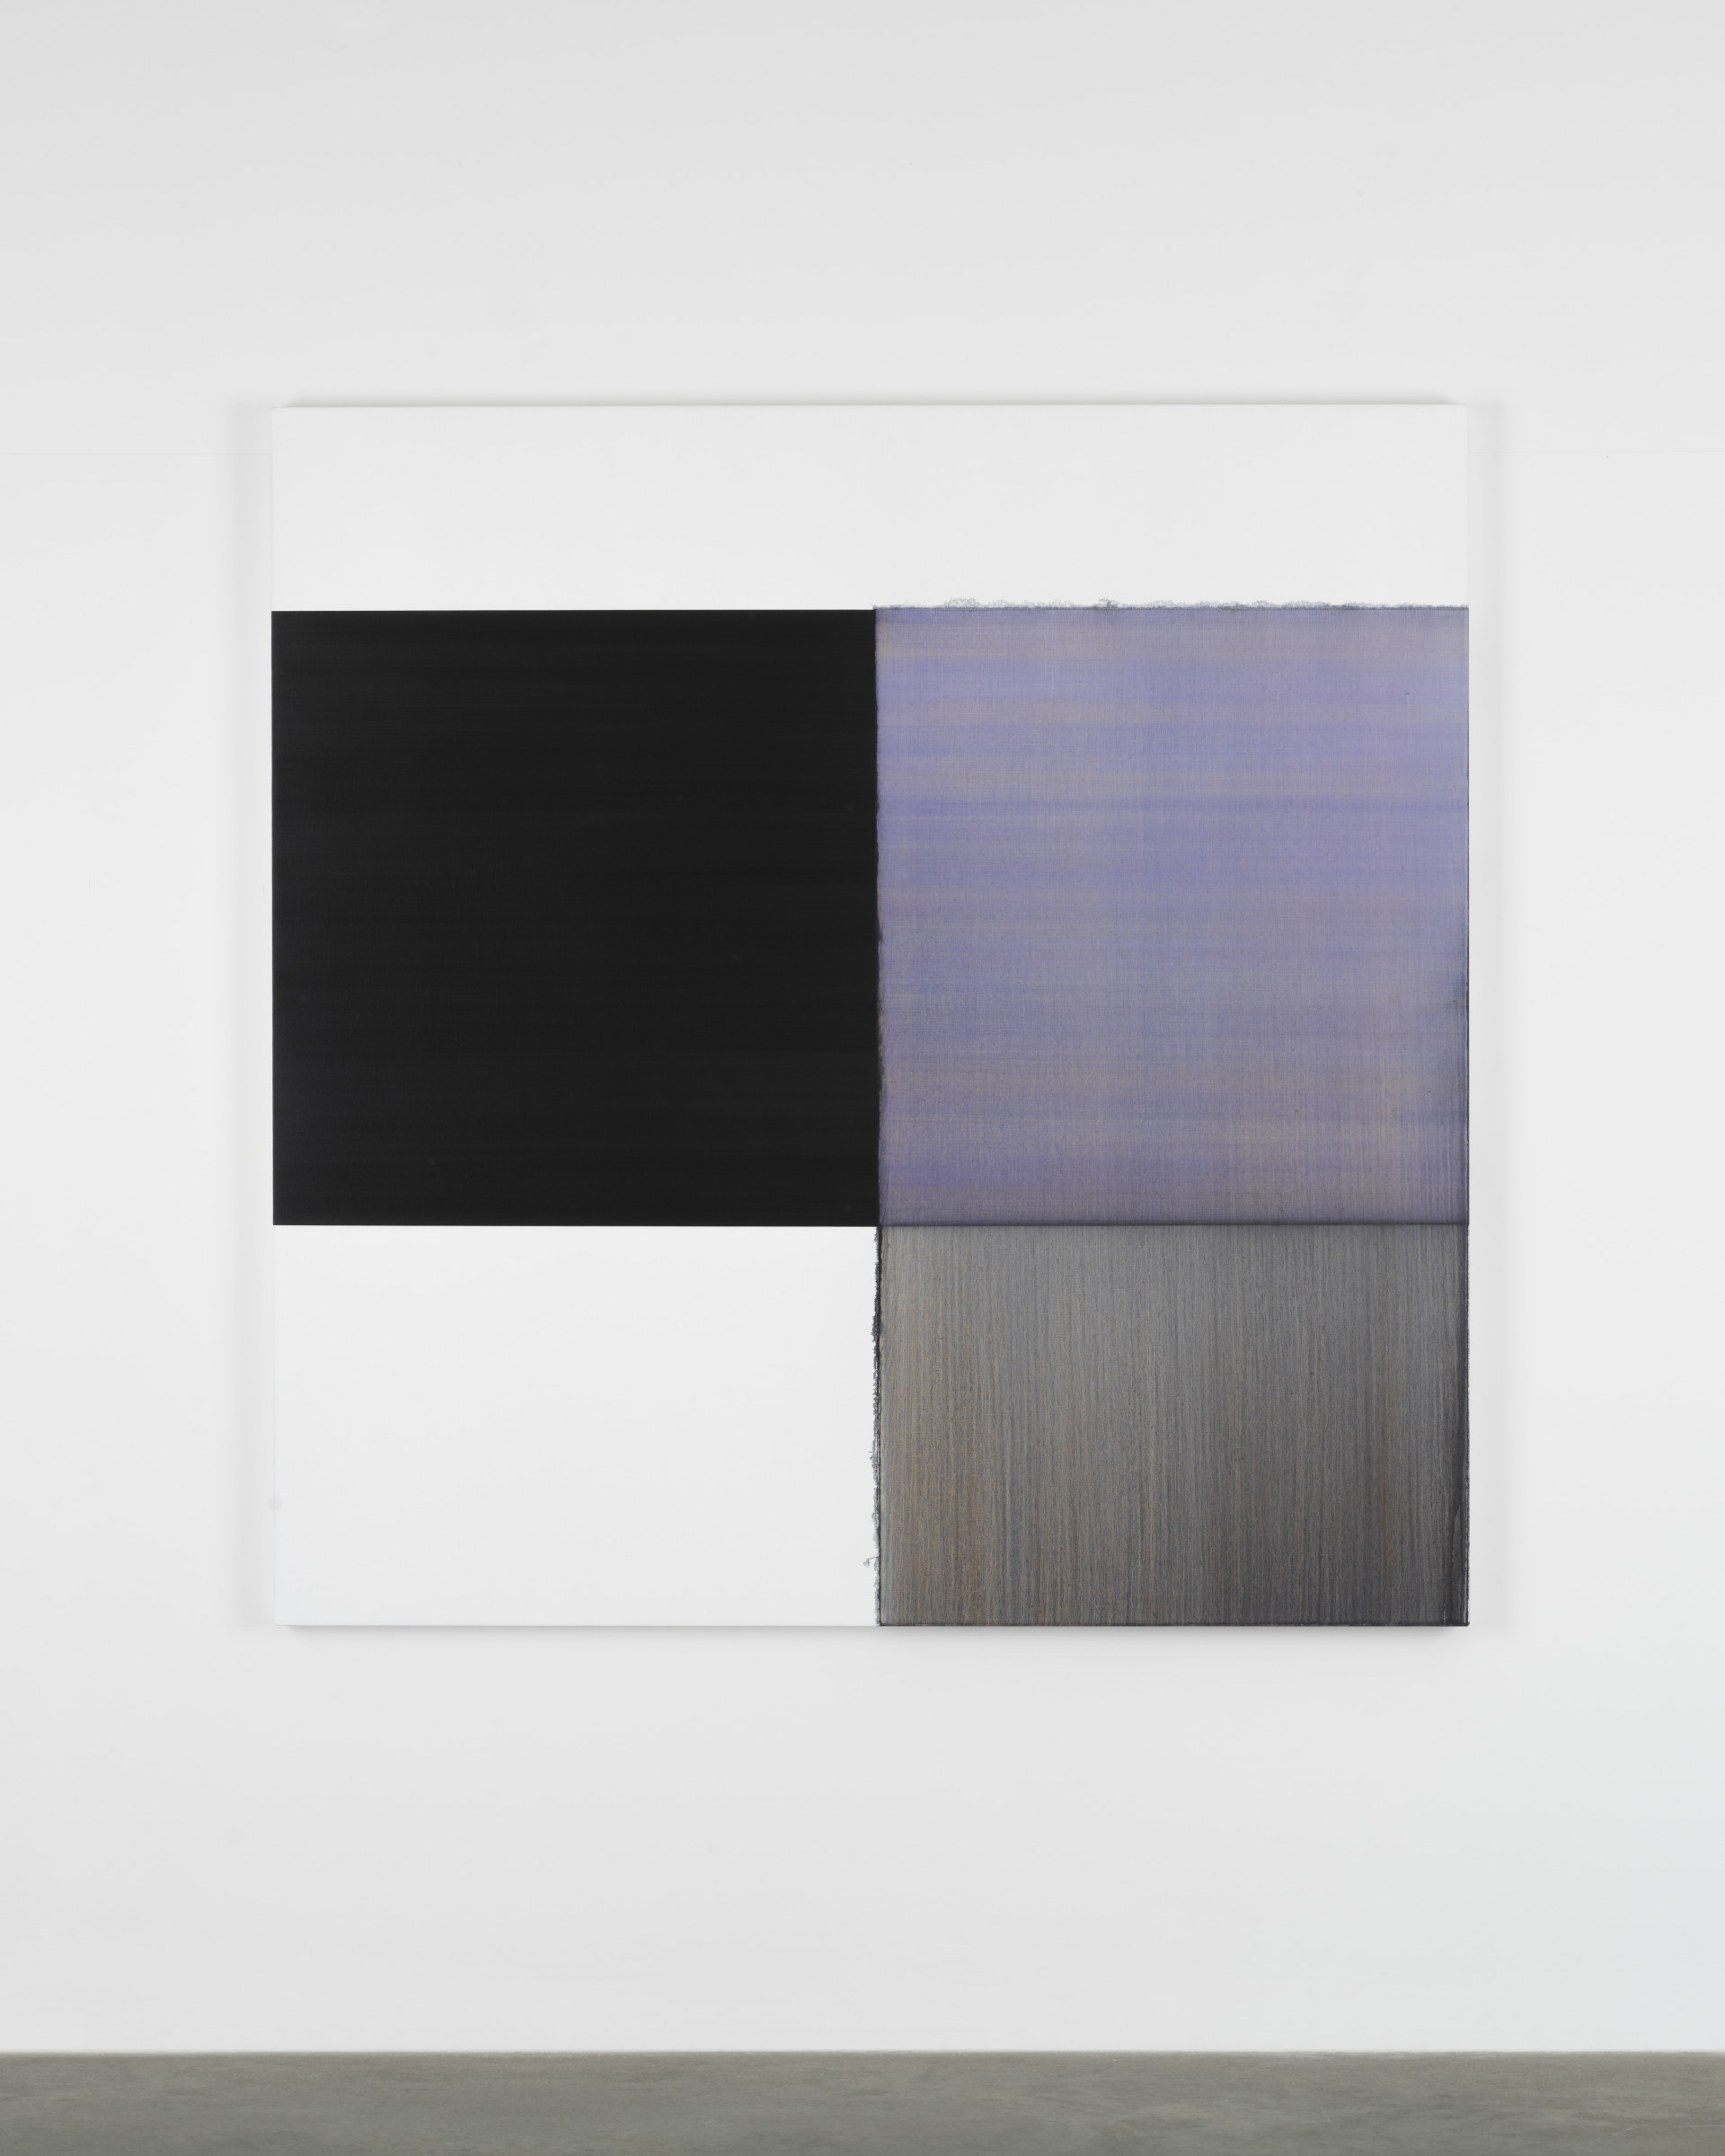 "<span class=""link fancybox-details-link""><a href=""/artists/33-callum-innes/works/16313/"">View Detail Page</a></span><div class=""artist""><strong>CALLUM INNES</strong></div> <div class=""title""><em>Exposed Painting Blue Violet</em>, 2019</div> <div class=""medium"">oil on linen</div> <div class=""dimensions"">160 x 157 cm</div><div class=""copyright_line"">Copyright The Artist</div>"